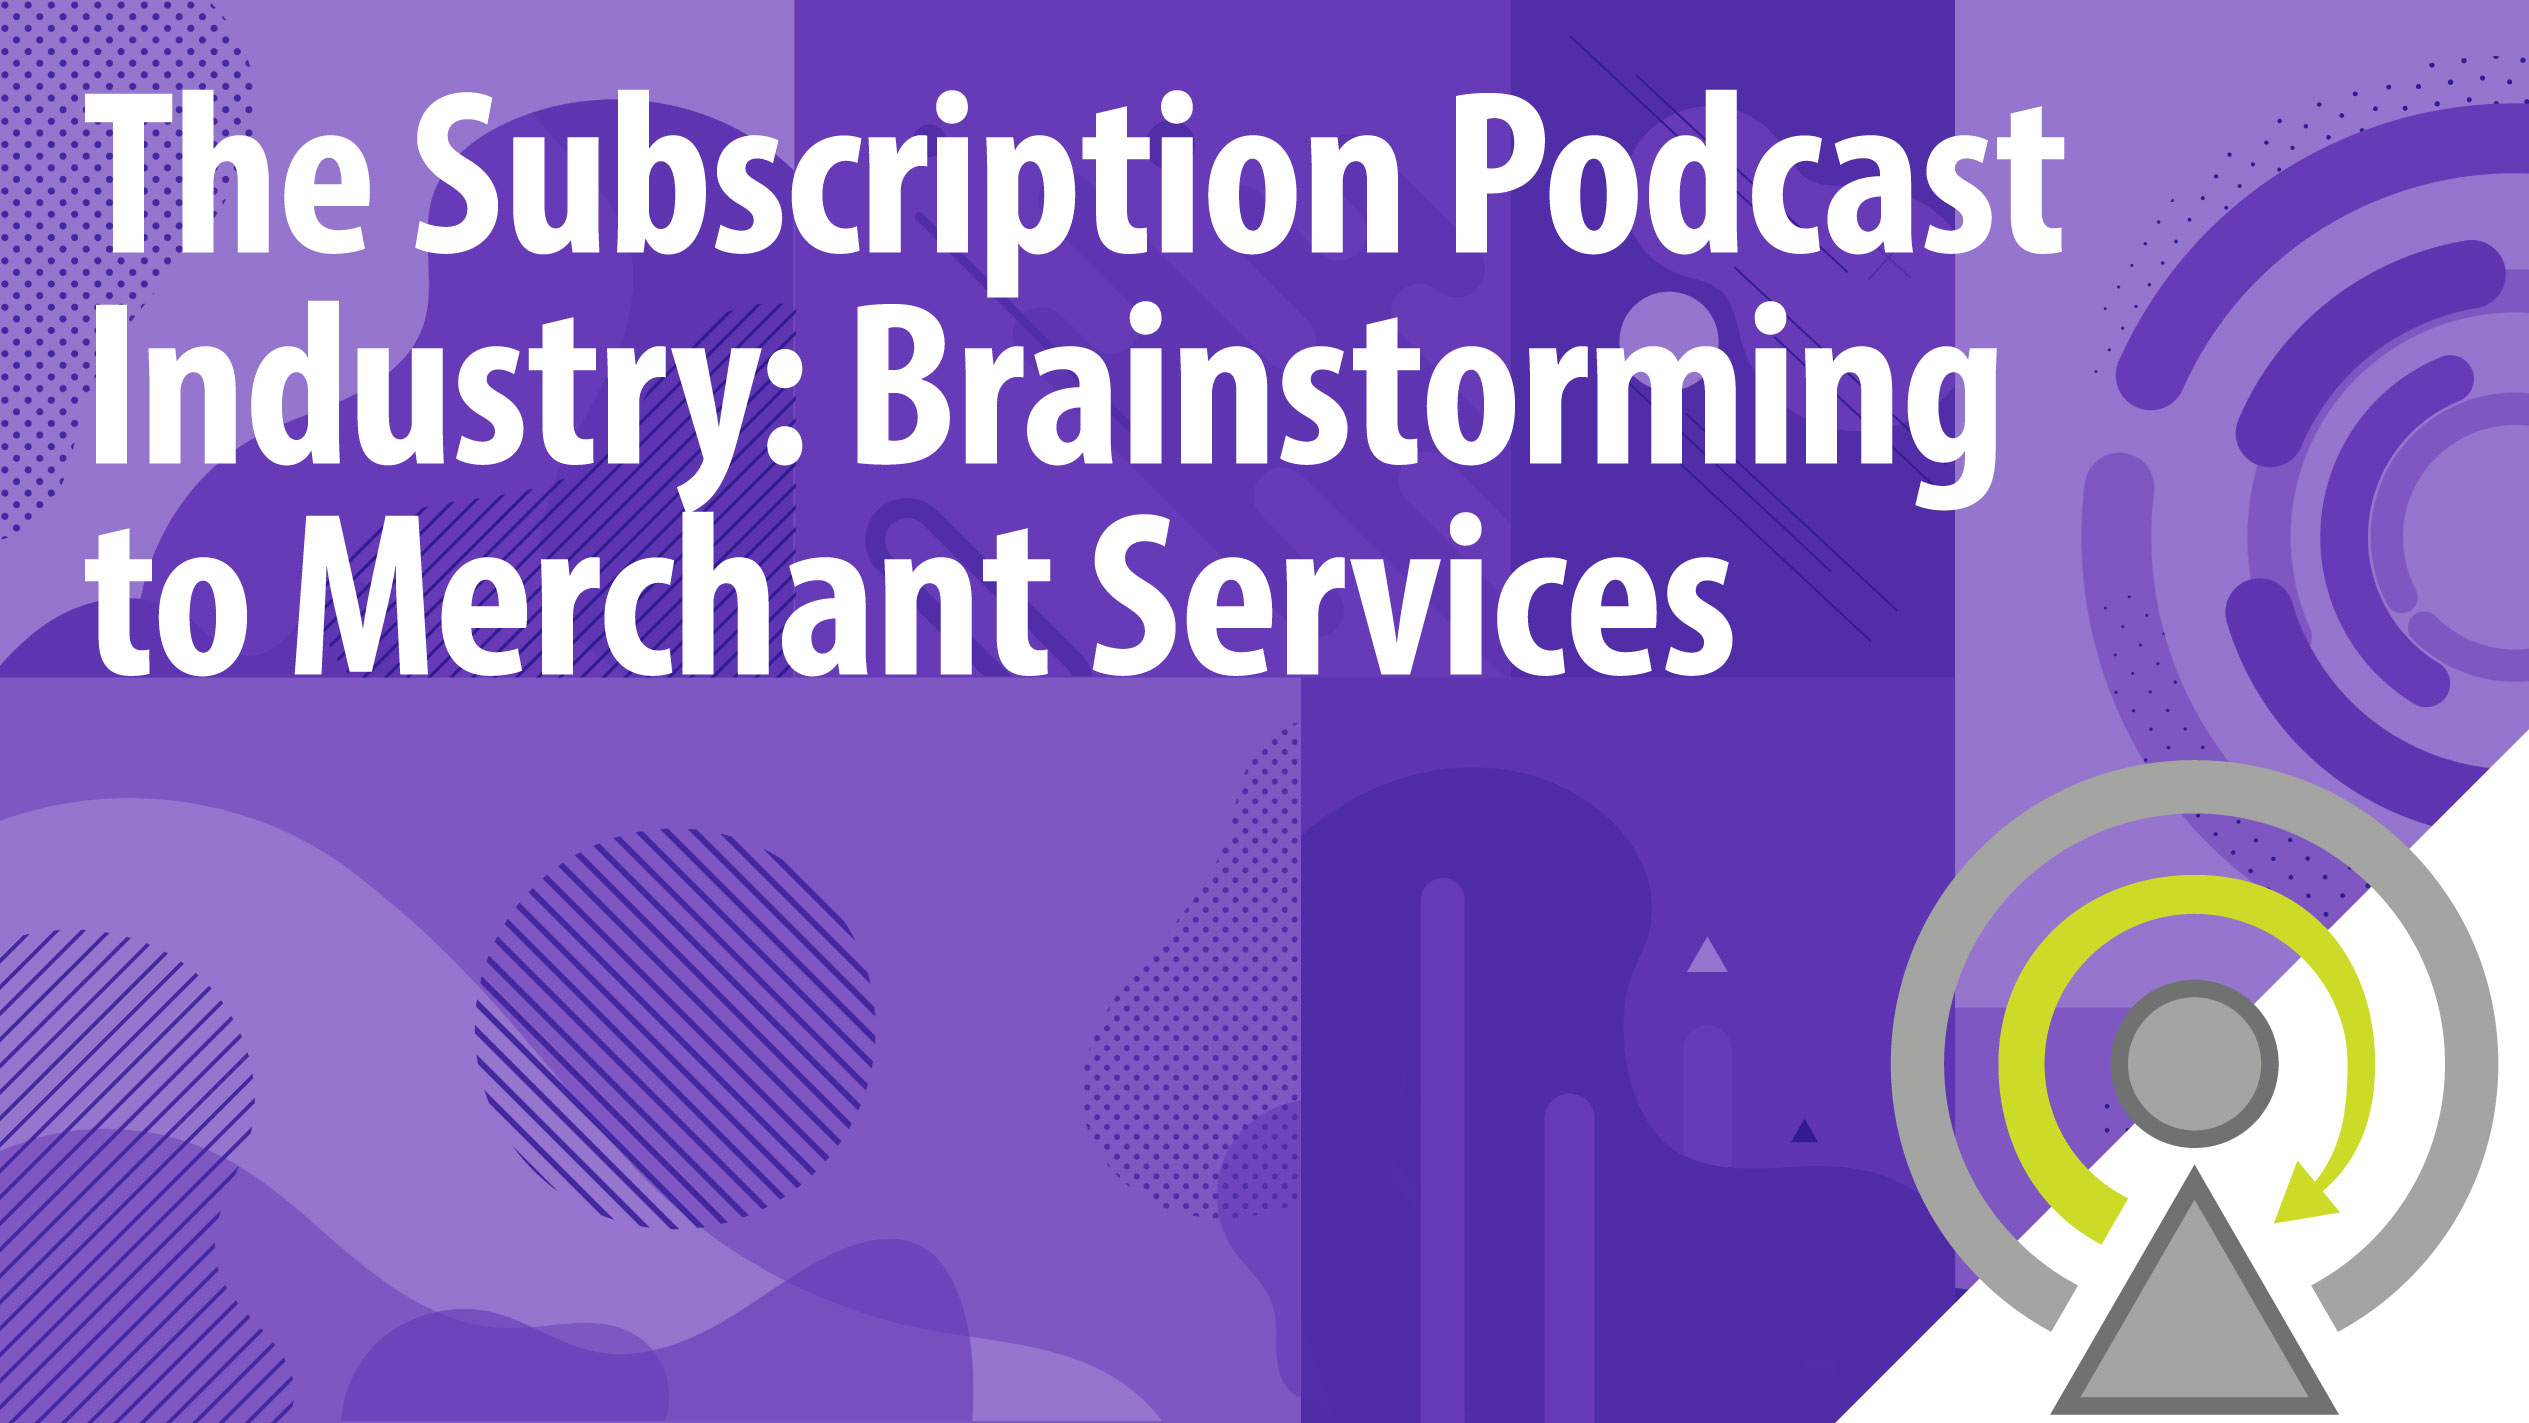 The Subscription Podcast Industry: Brainstorming to Merchant Services